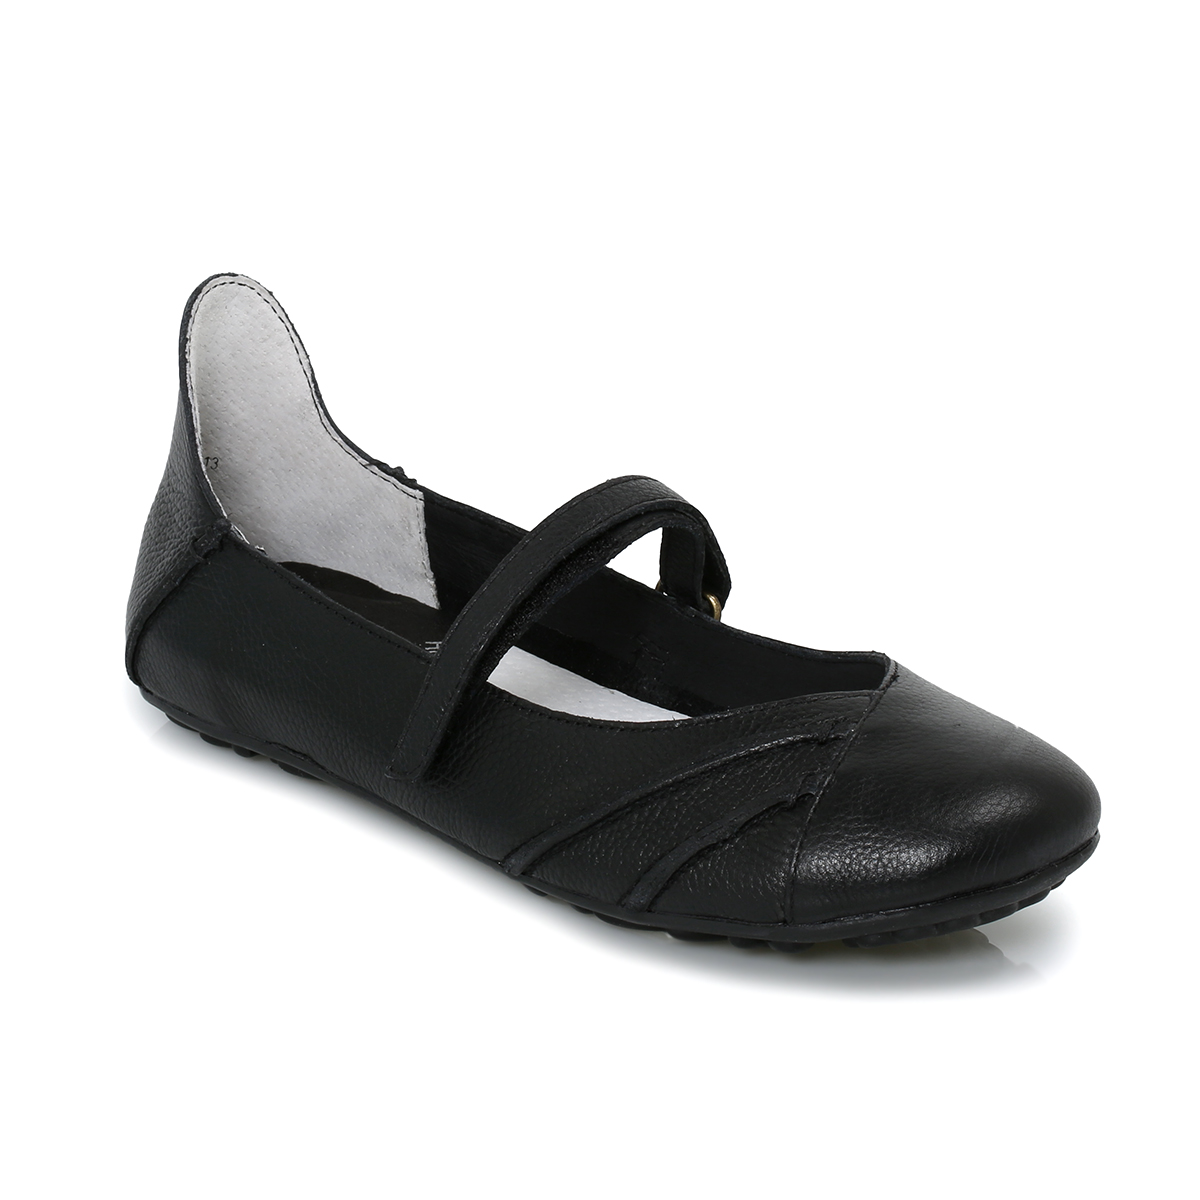 Hush Puppies Brietta Black Leather Womens Flats Shoes Size 3 8